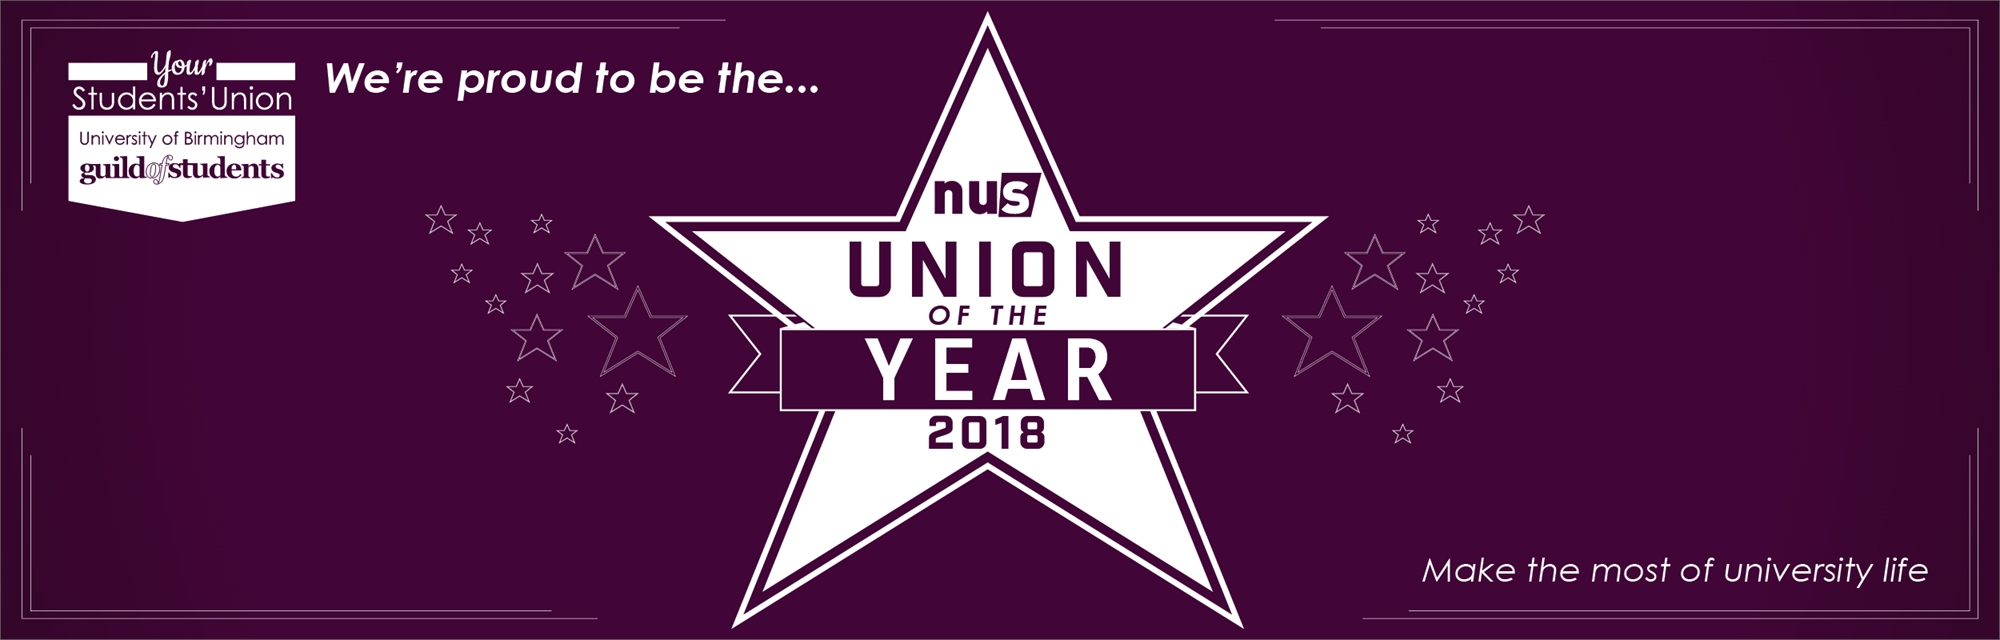 Guild of Students is proud to be the NUS Union of the Year 2018 - Make the most of University Life